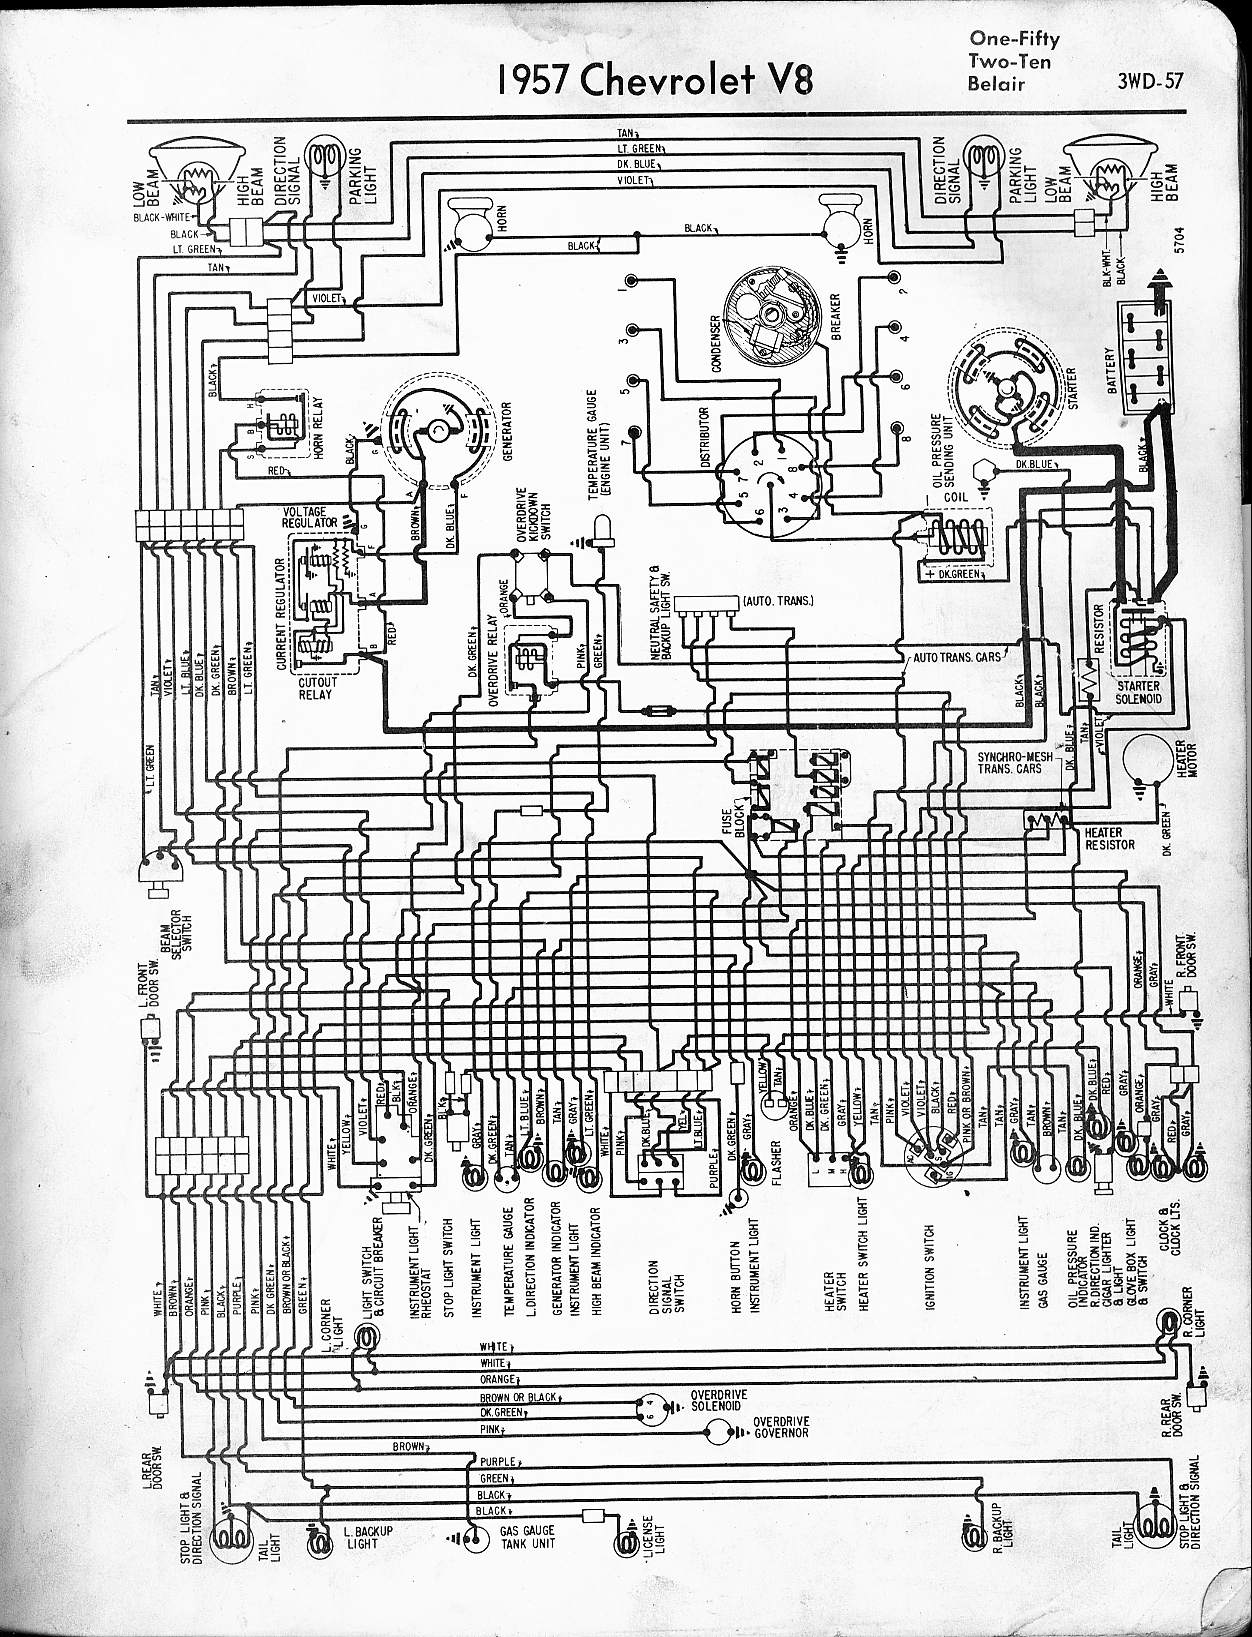 MWireChev57_3WD 057 57 65 chevy wiring diagrams 1957 chevy bel air wiring harness at readyjetset.co